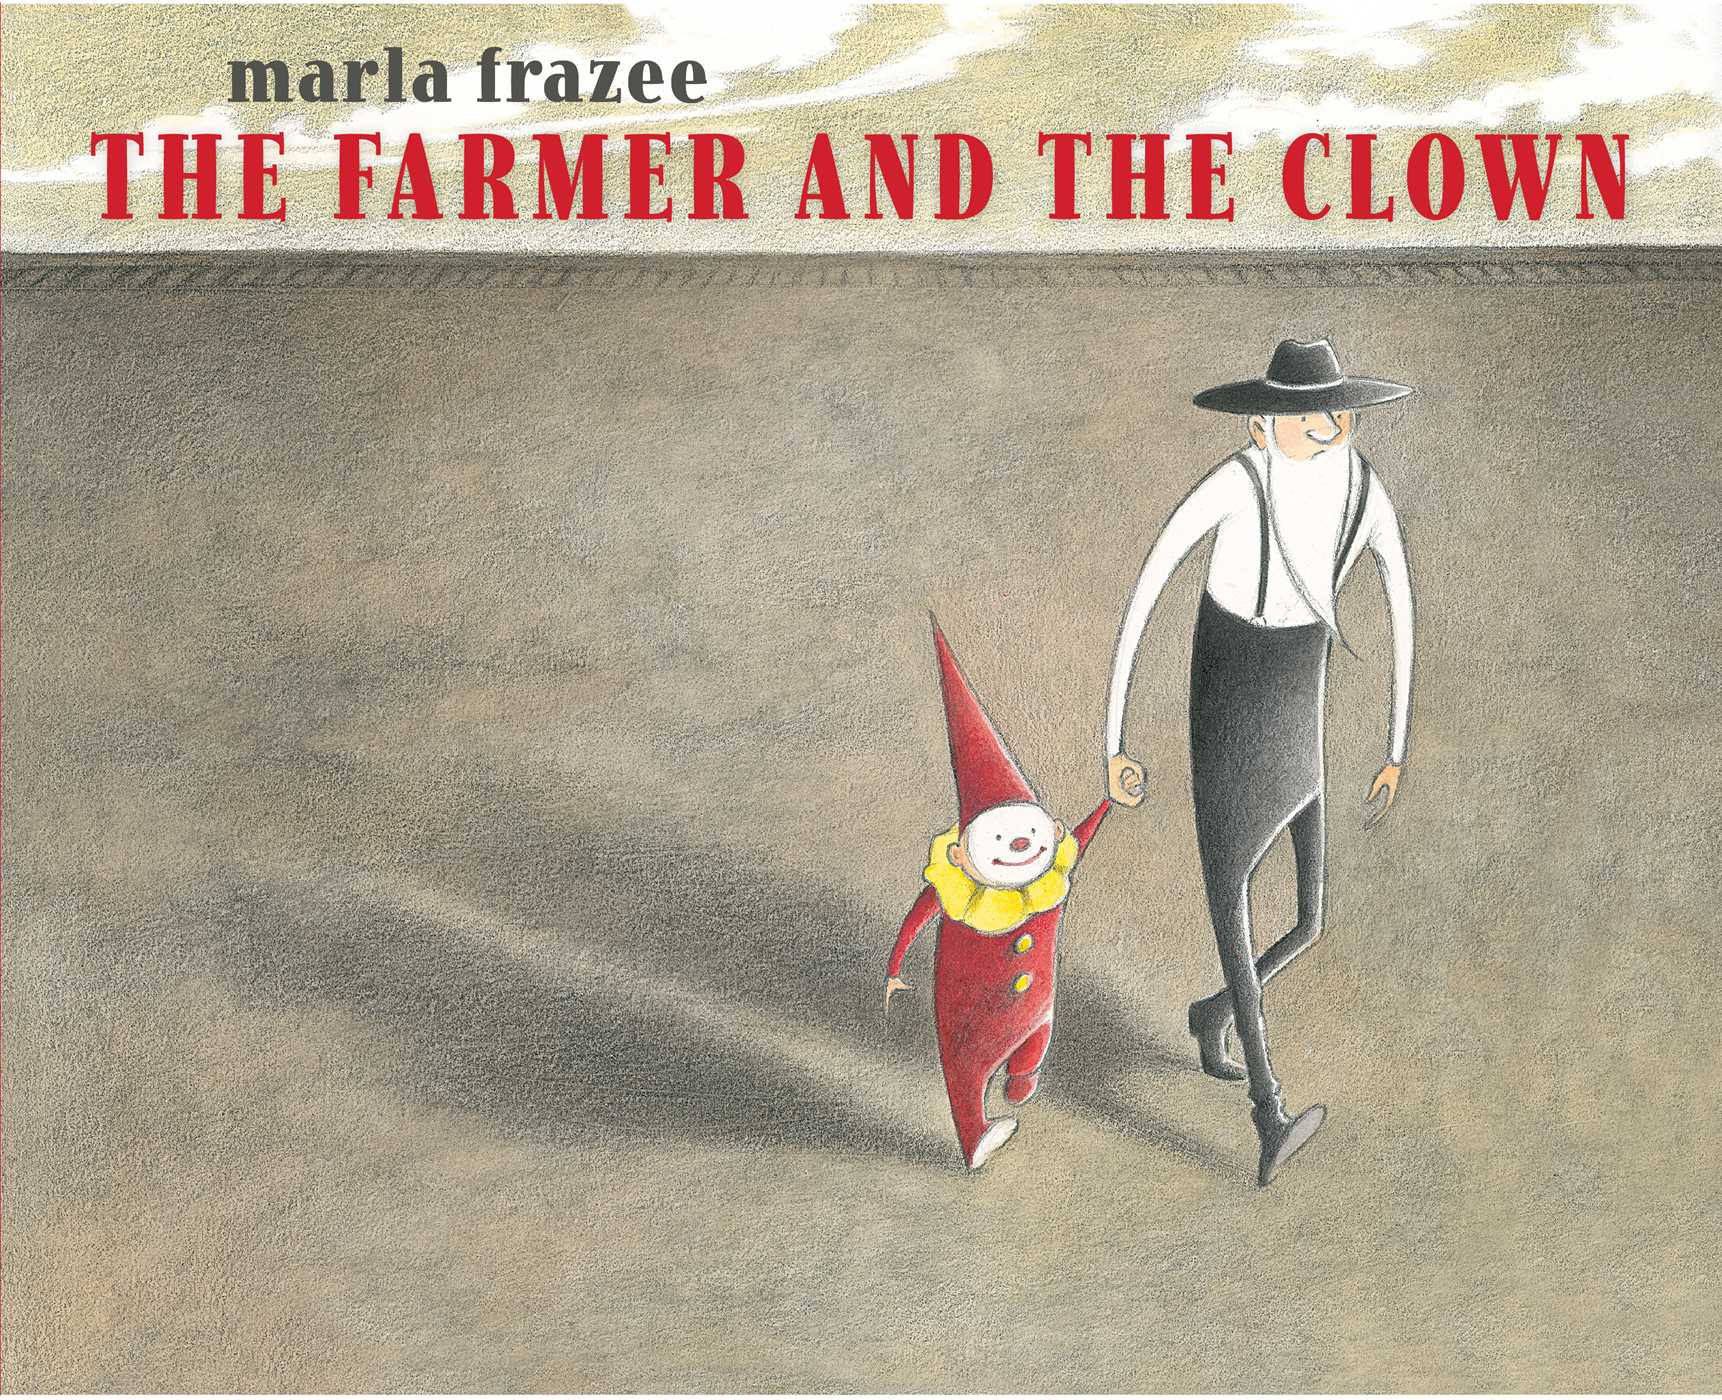 The farmer and the clown 9781442497450 hr